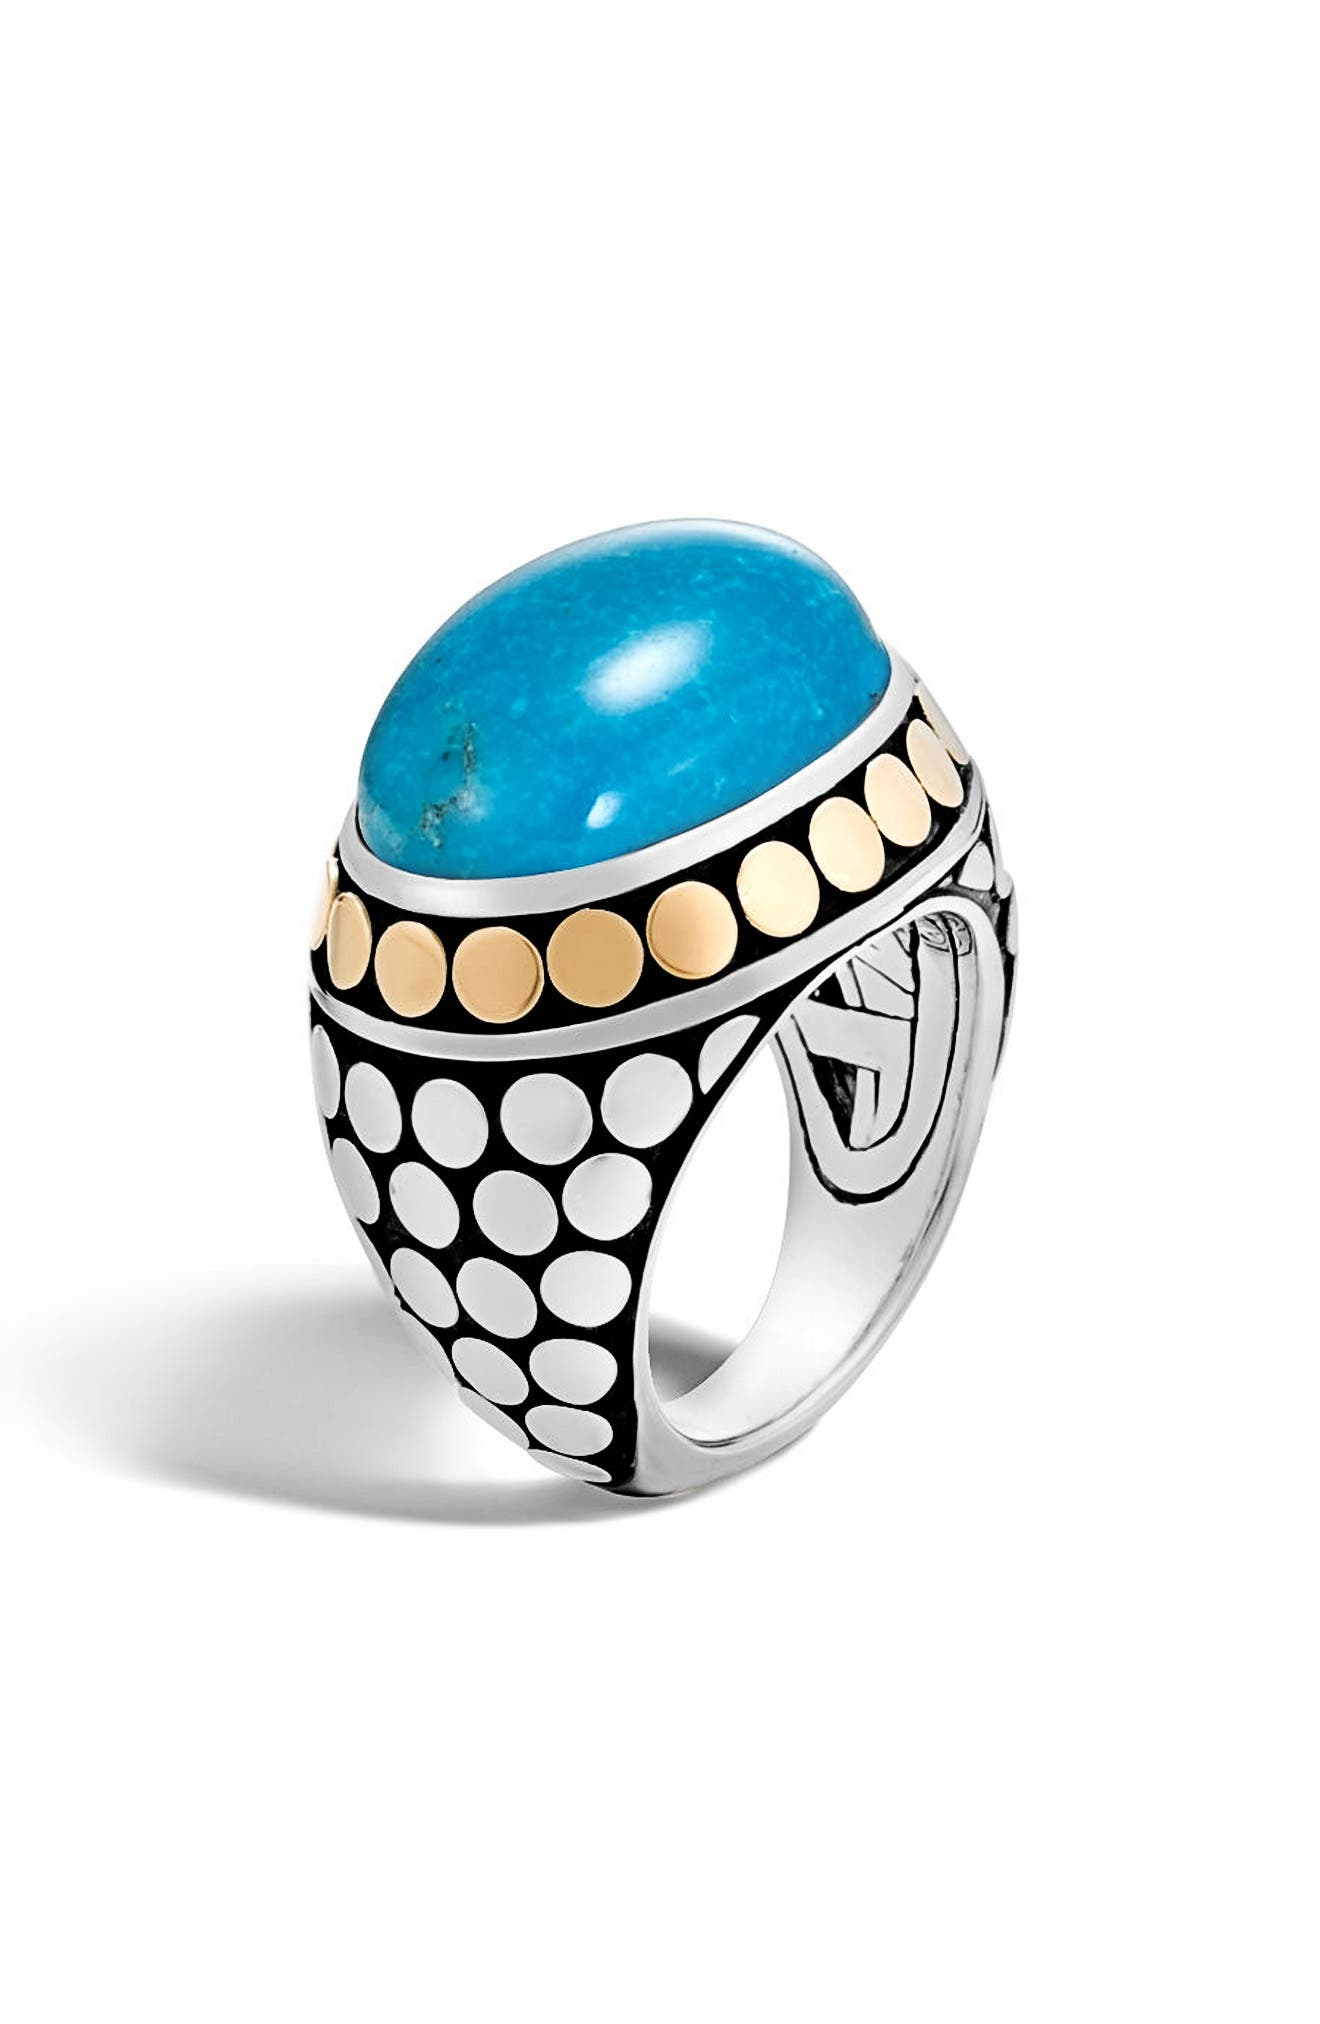 JOHN HARDY Dot Silver & Turquoise Dome Ring, Main, color, SILVER/ GOLD/ TURQUOISE